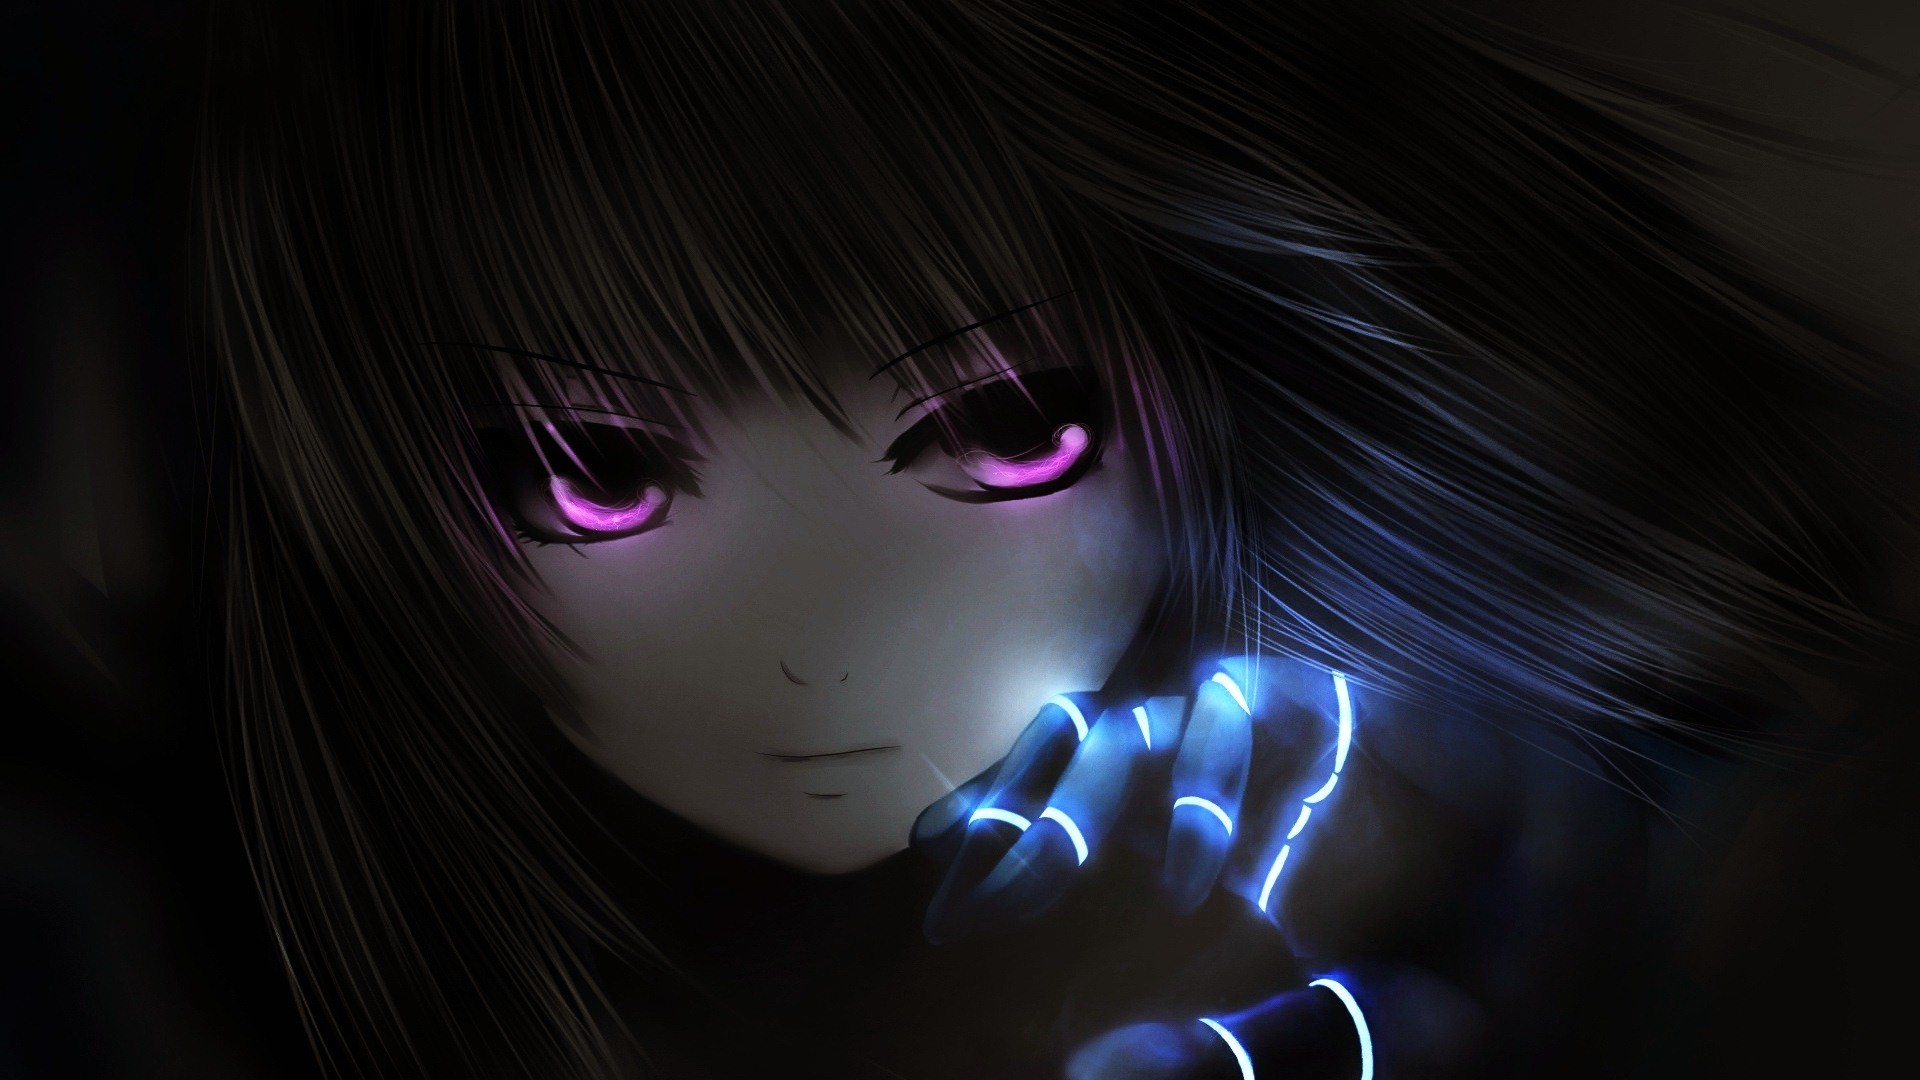 Res: 1920x1080, Dark Anime Wallpapers Picture : Anime Wallpaper Arunnath Best images about  Dark/ Sad anime on Pinterest Flower